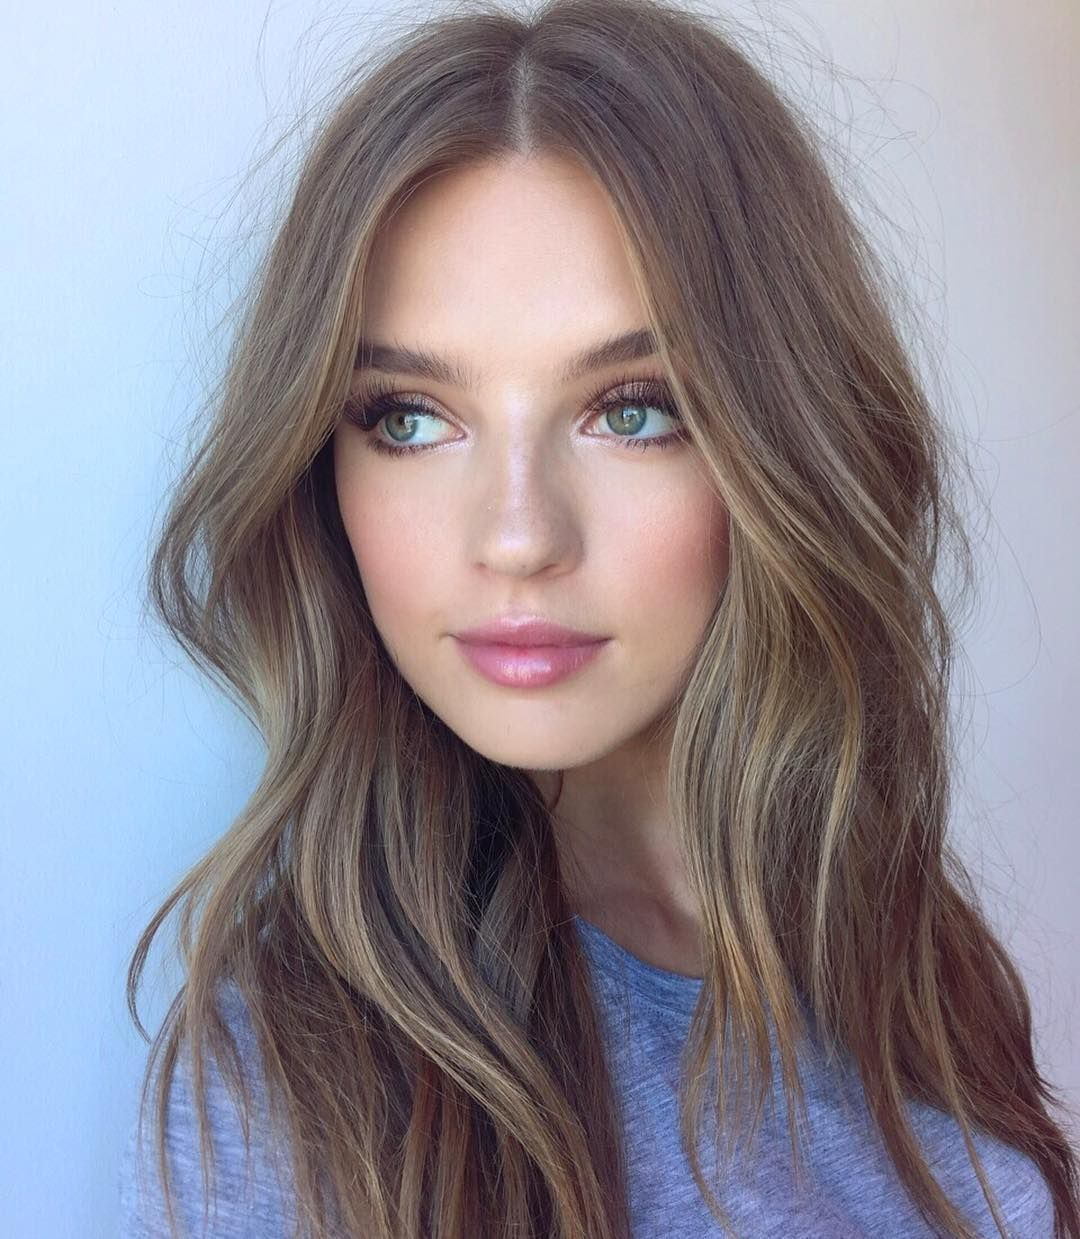 Achieve Fresh Faced Makeup With A Shimmer Eyeshadow In The Inner Corners Of The Eye Peach Blush And A Pink Glossy Lip With Images Dark Blonde Hair Color